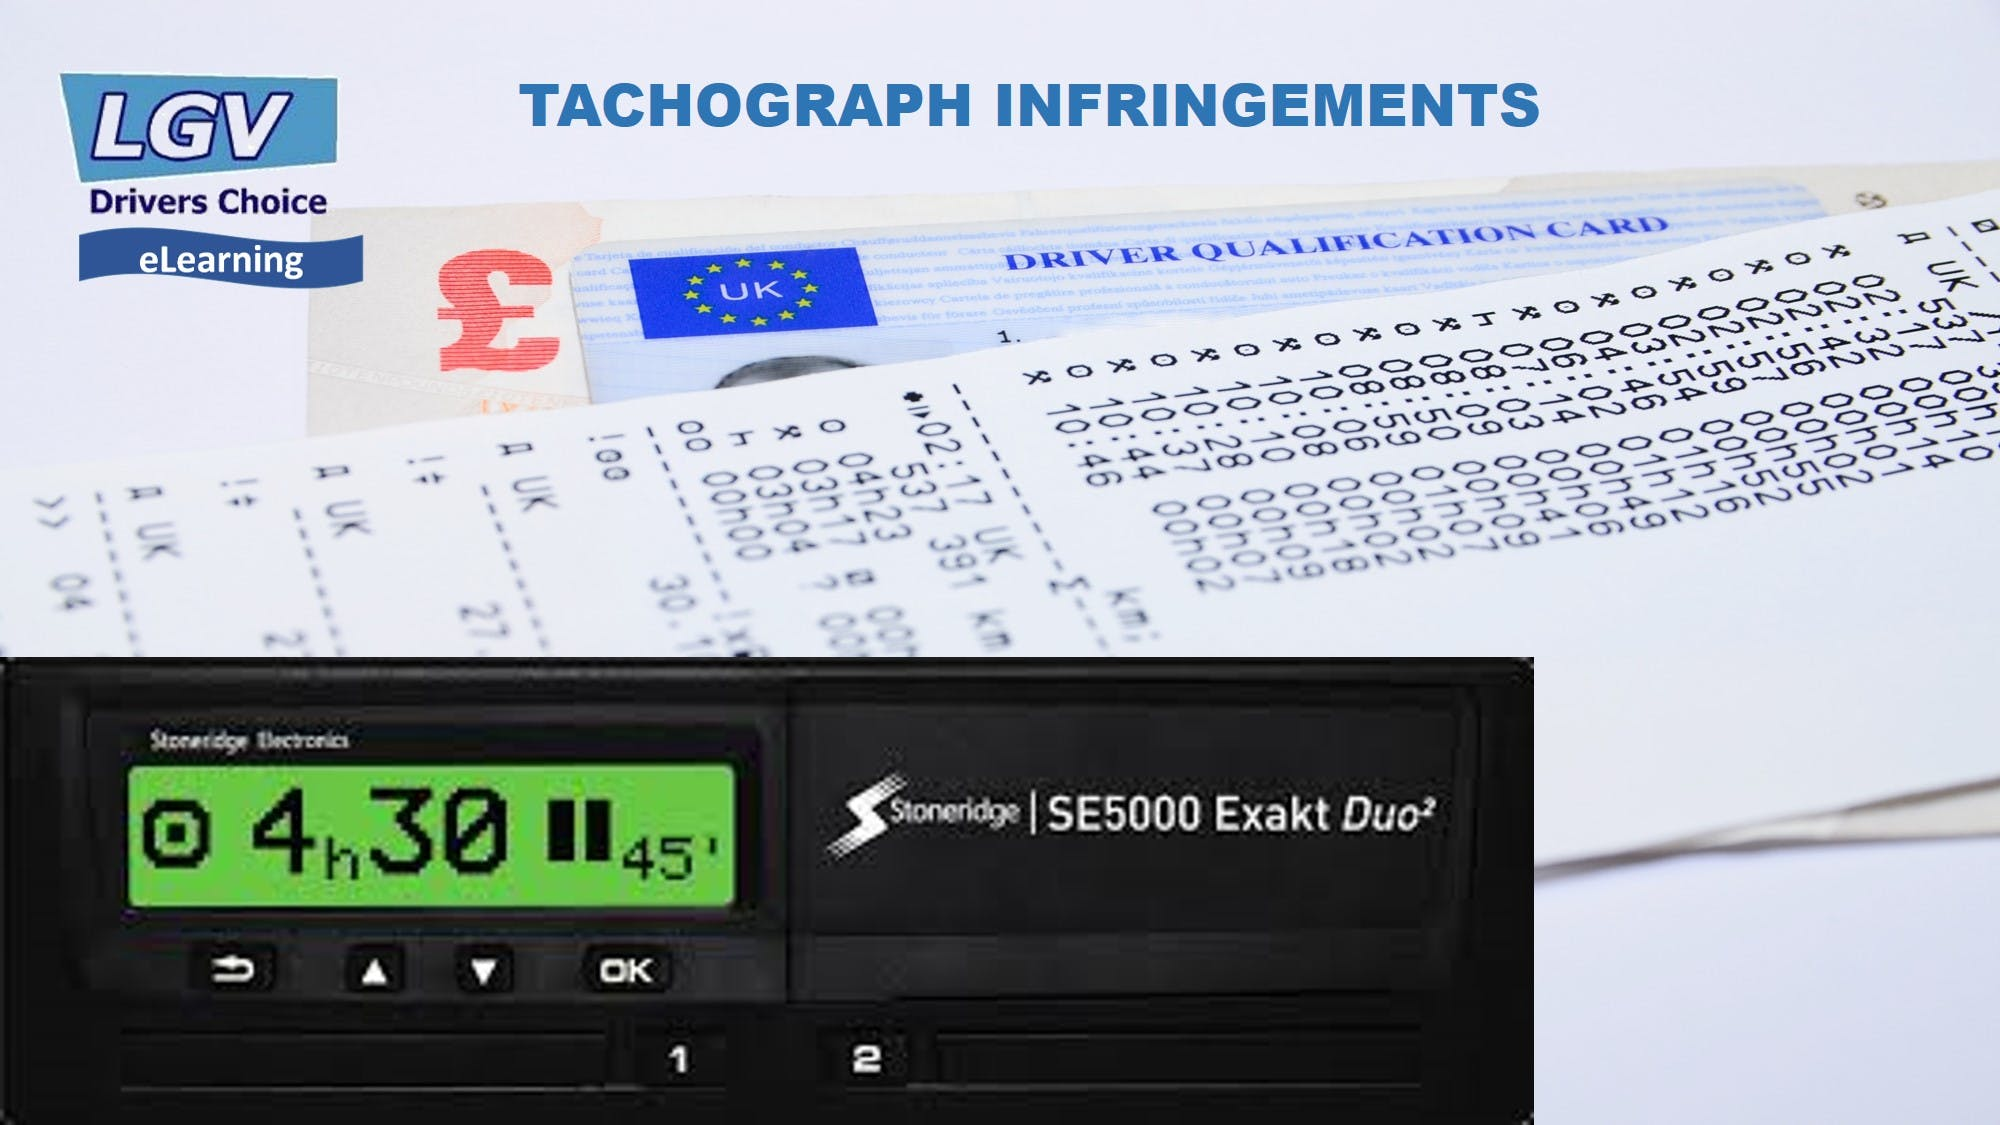 Front of Tachograph and printout of infringements